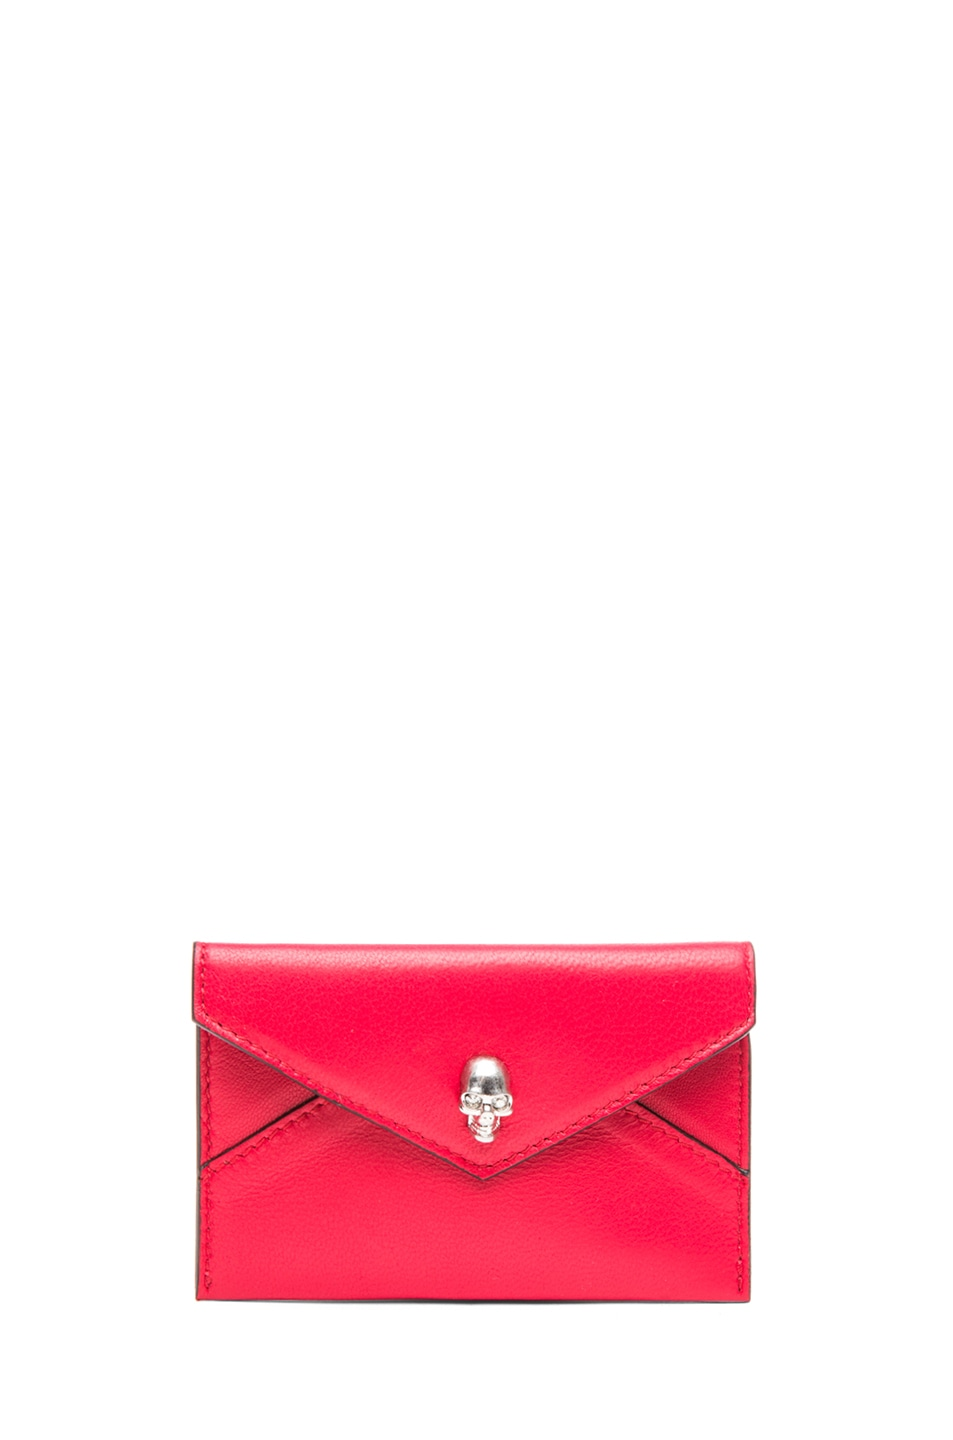 Image 1 of Alexander McQueen Envelope Card Holder in Shiny Red